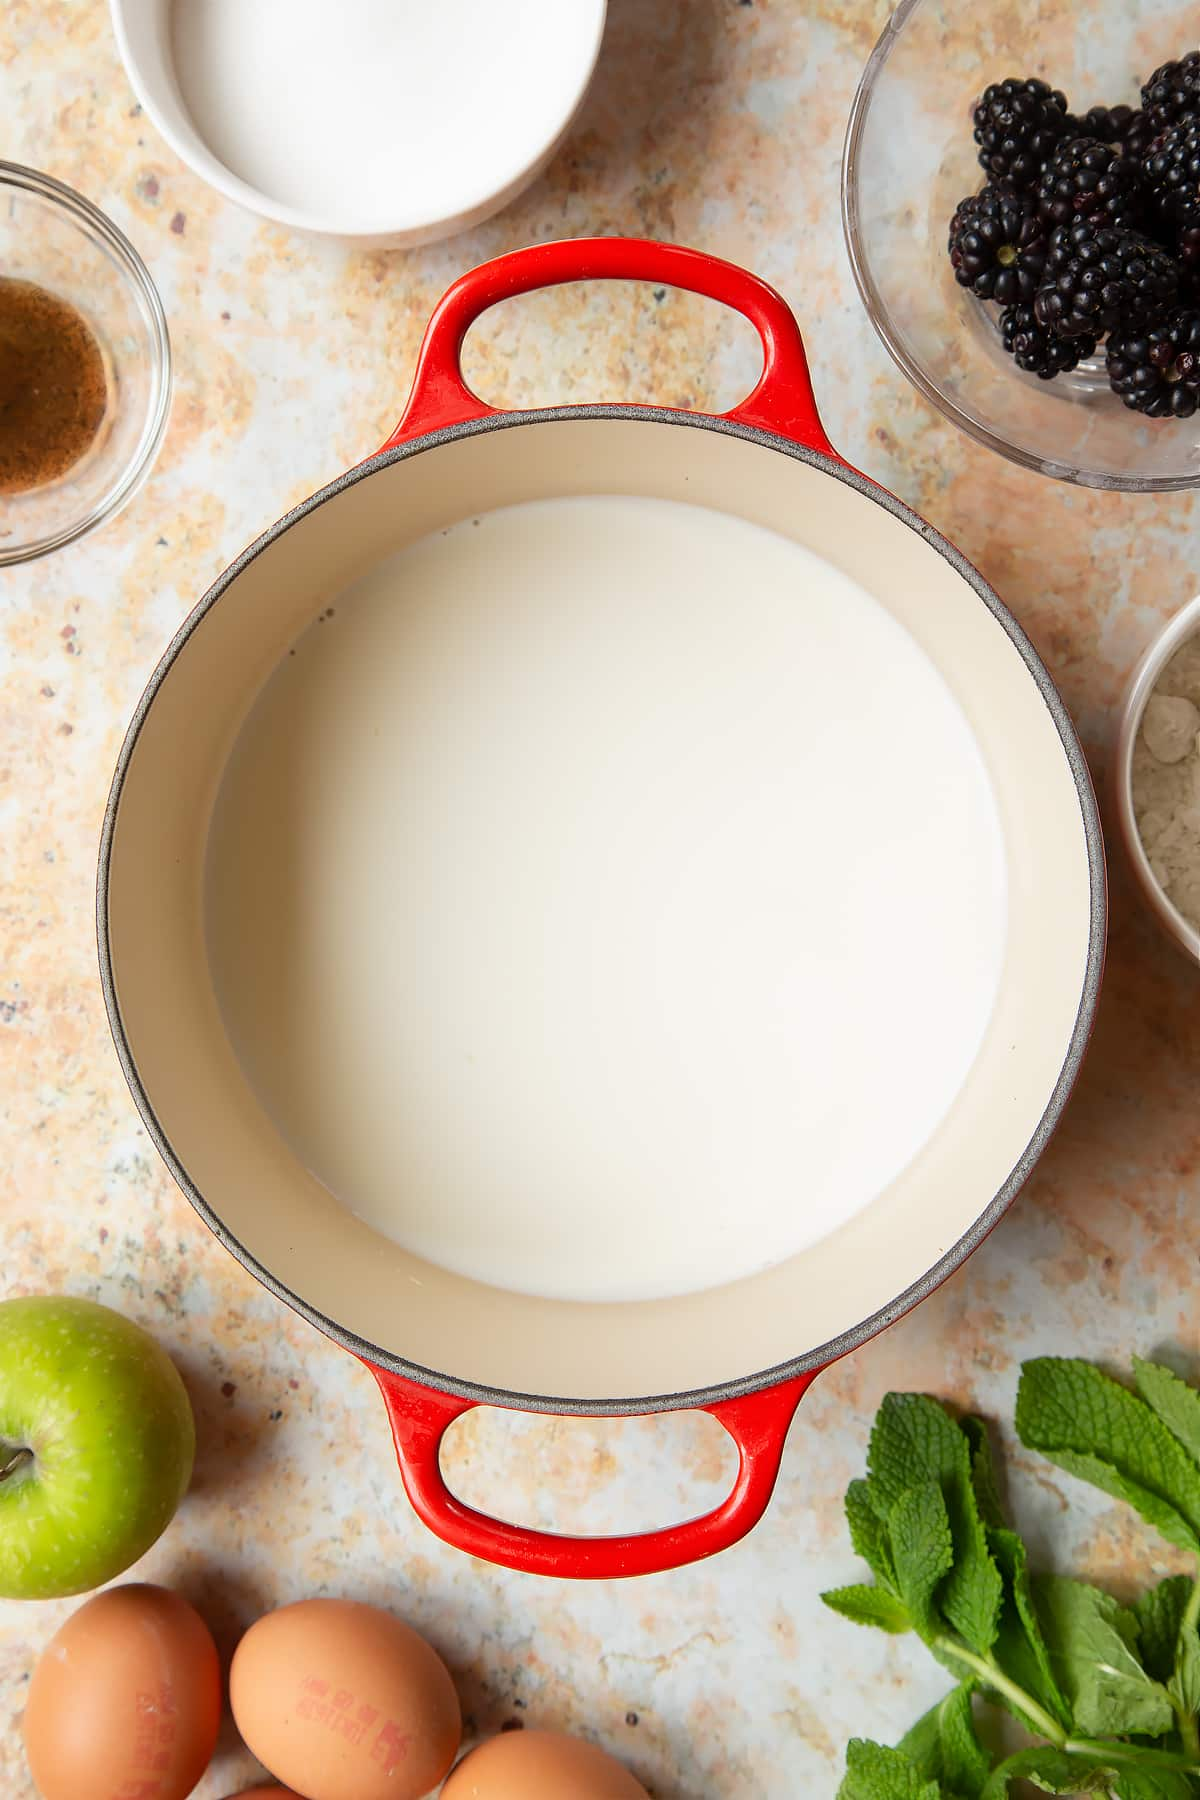 A saucepan filled with milk, surrounded by ingredients to make blackberry tartlets.